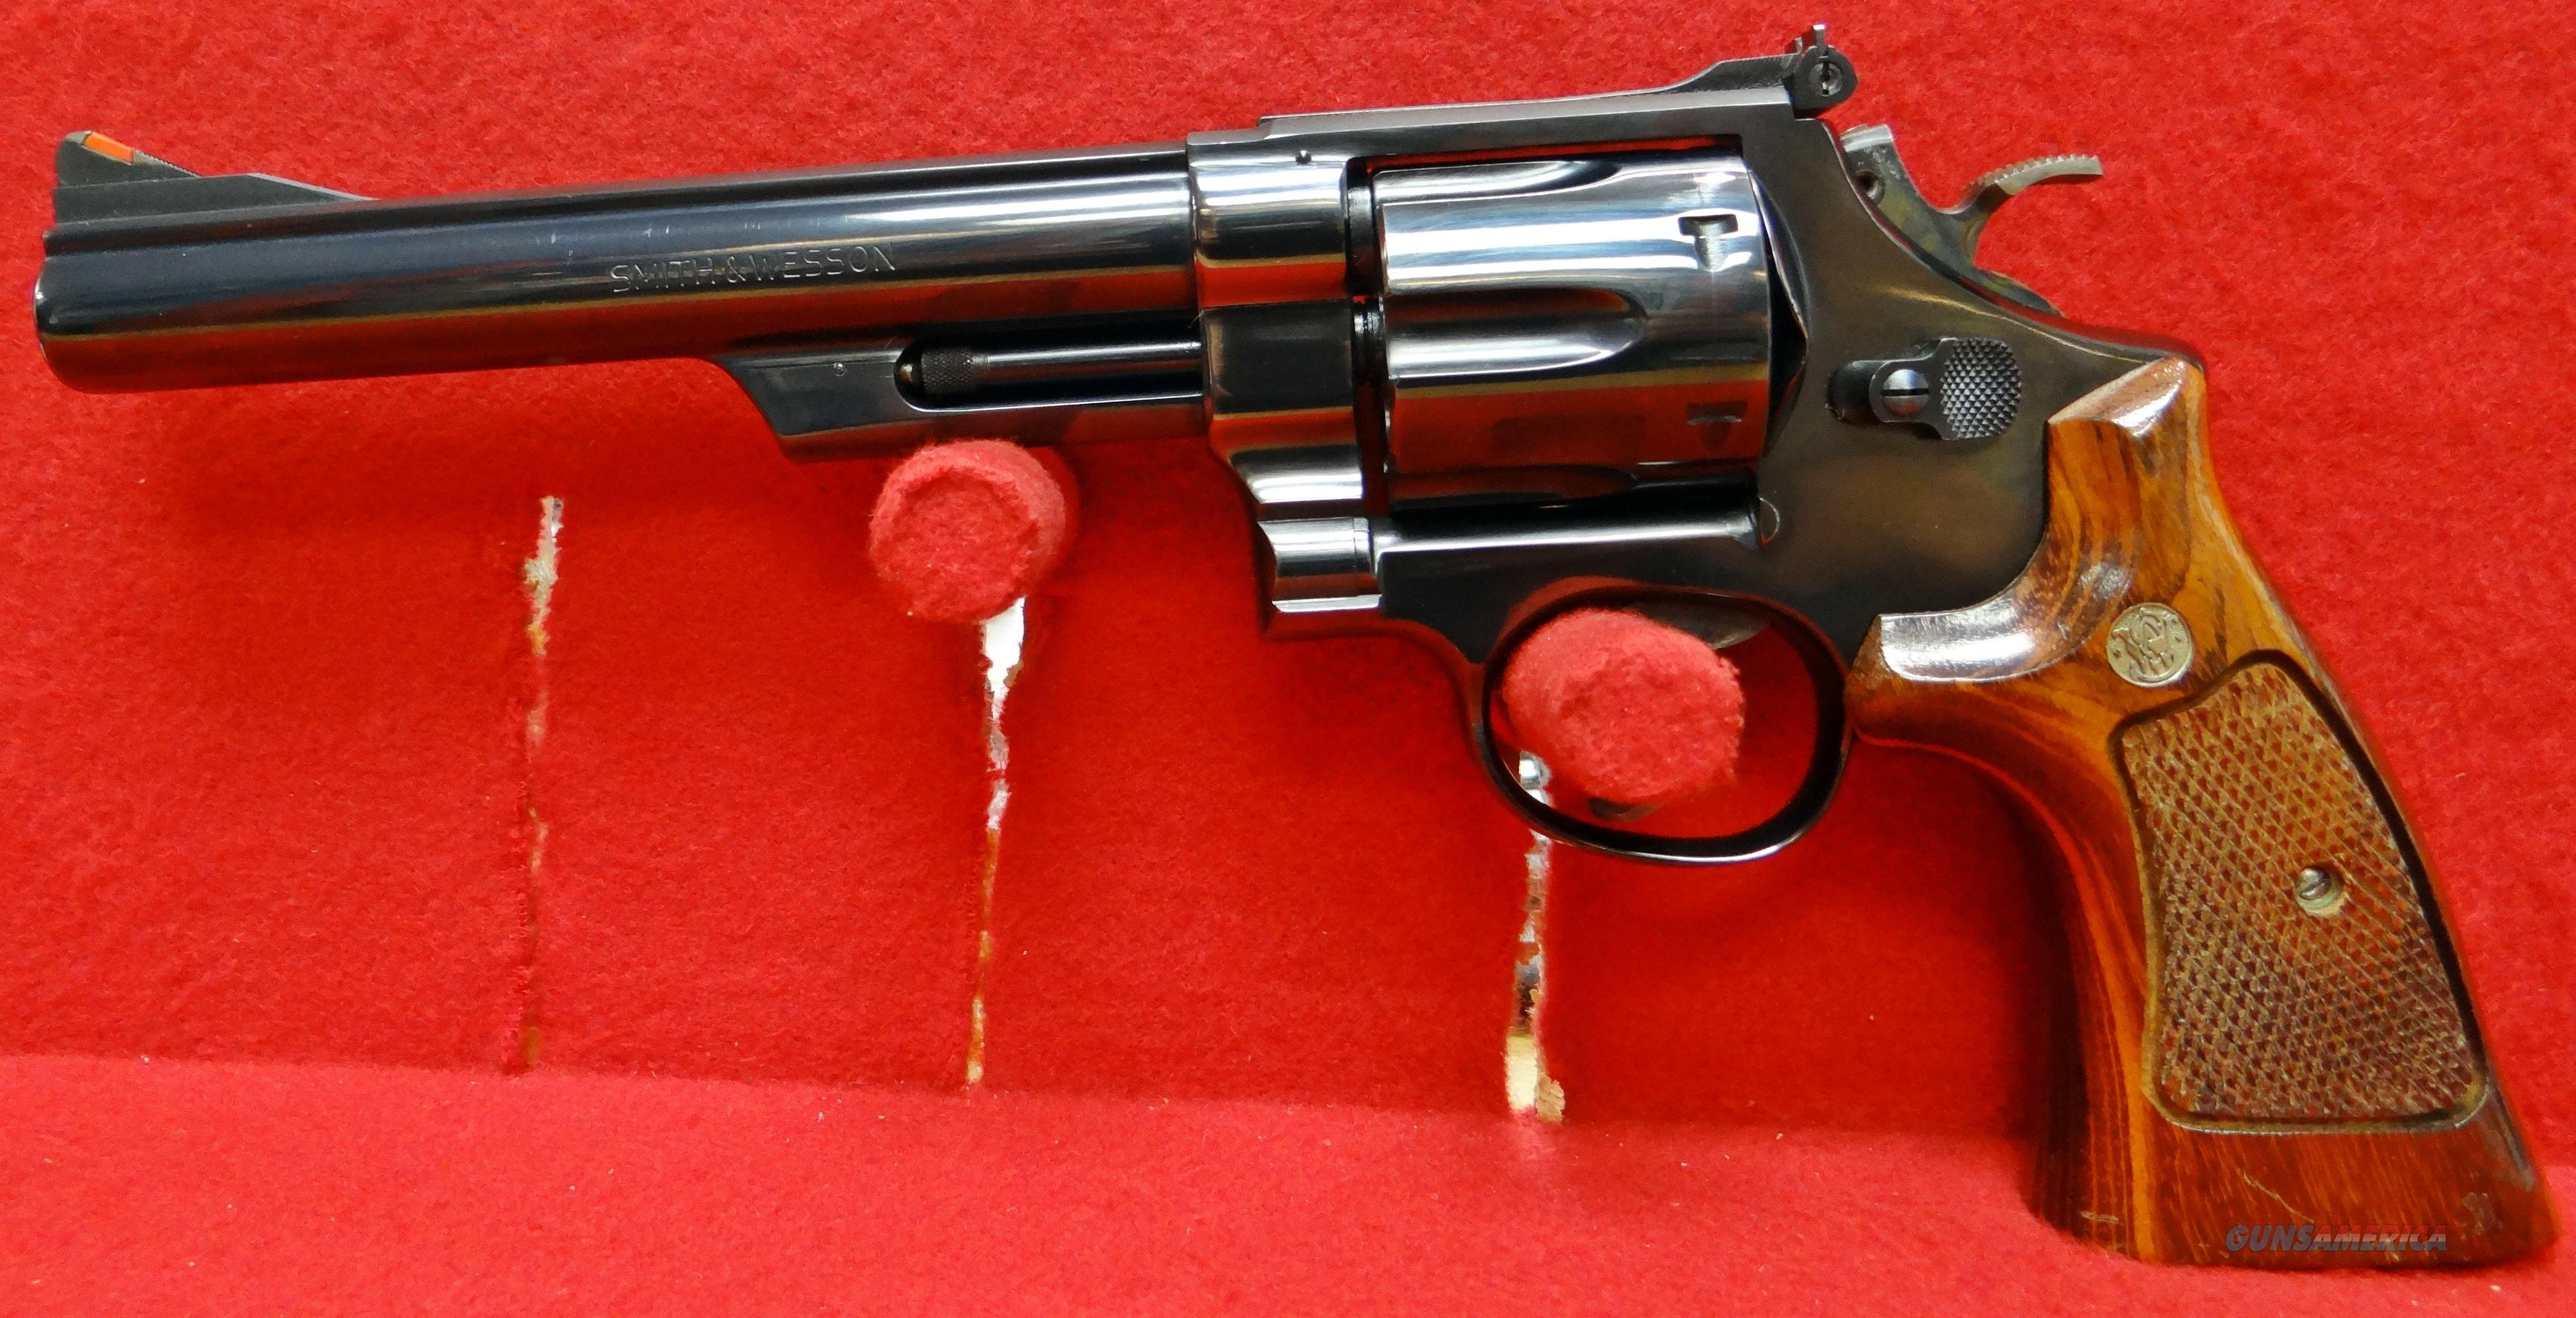 SMITH & WESSON MODEL 29-2  Guns > Pistols > Smith & Wesson Revolvers > Full Frame Revolver